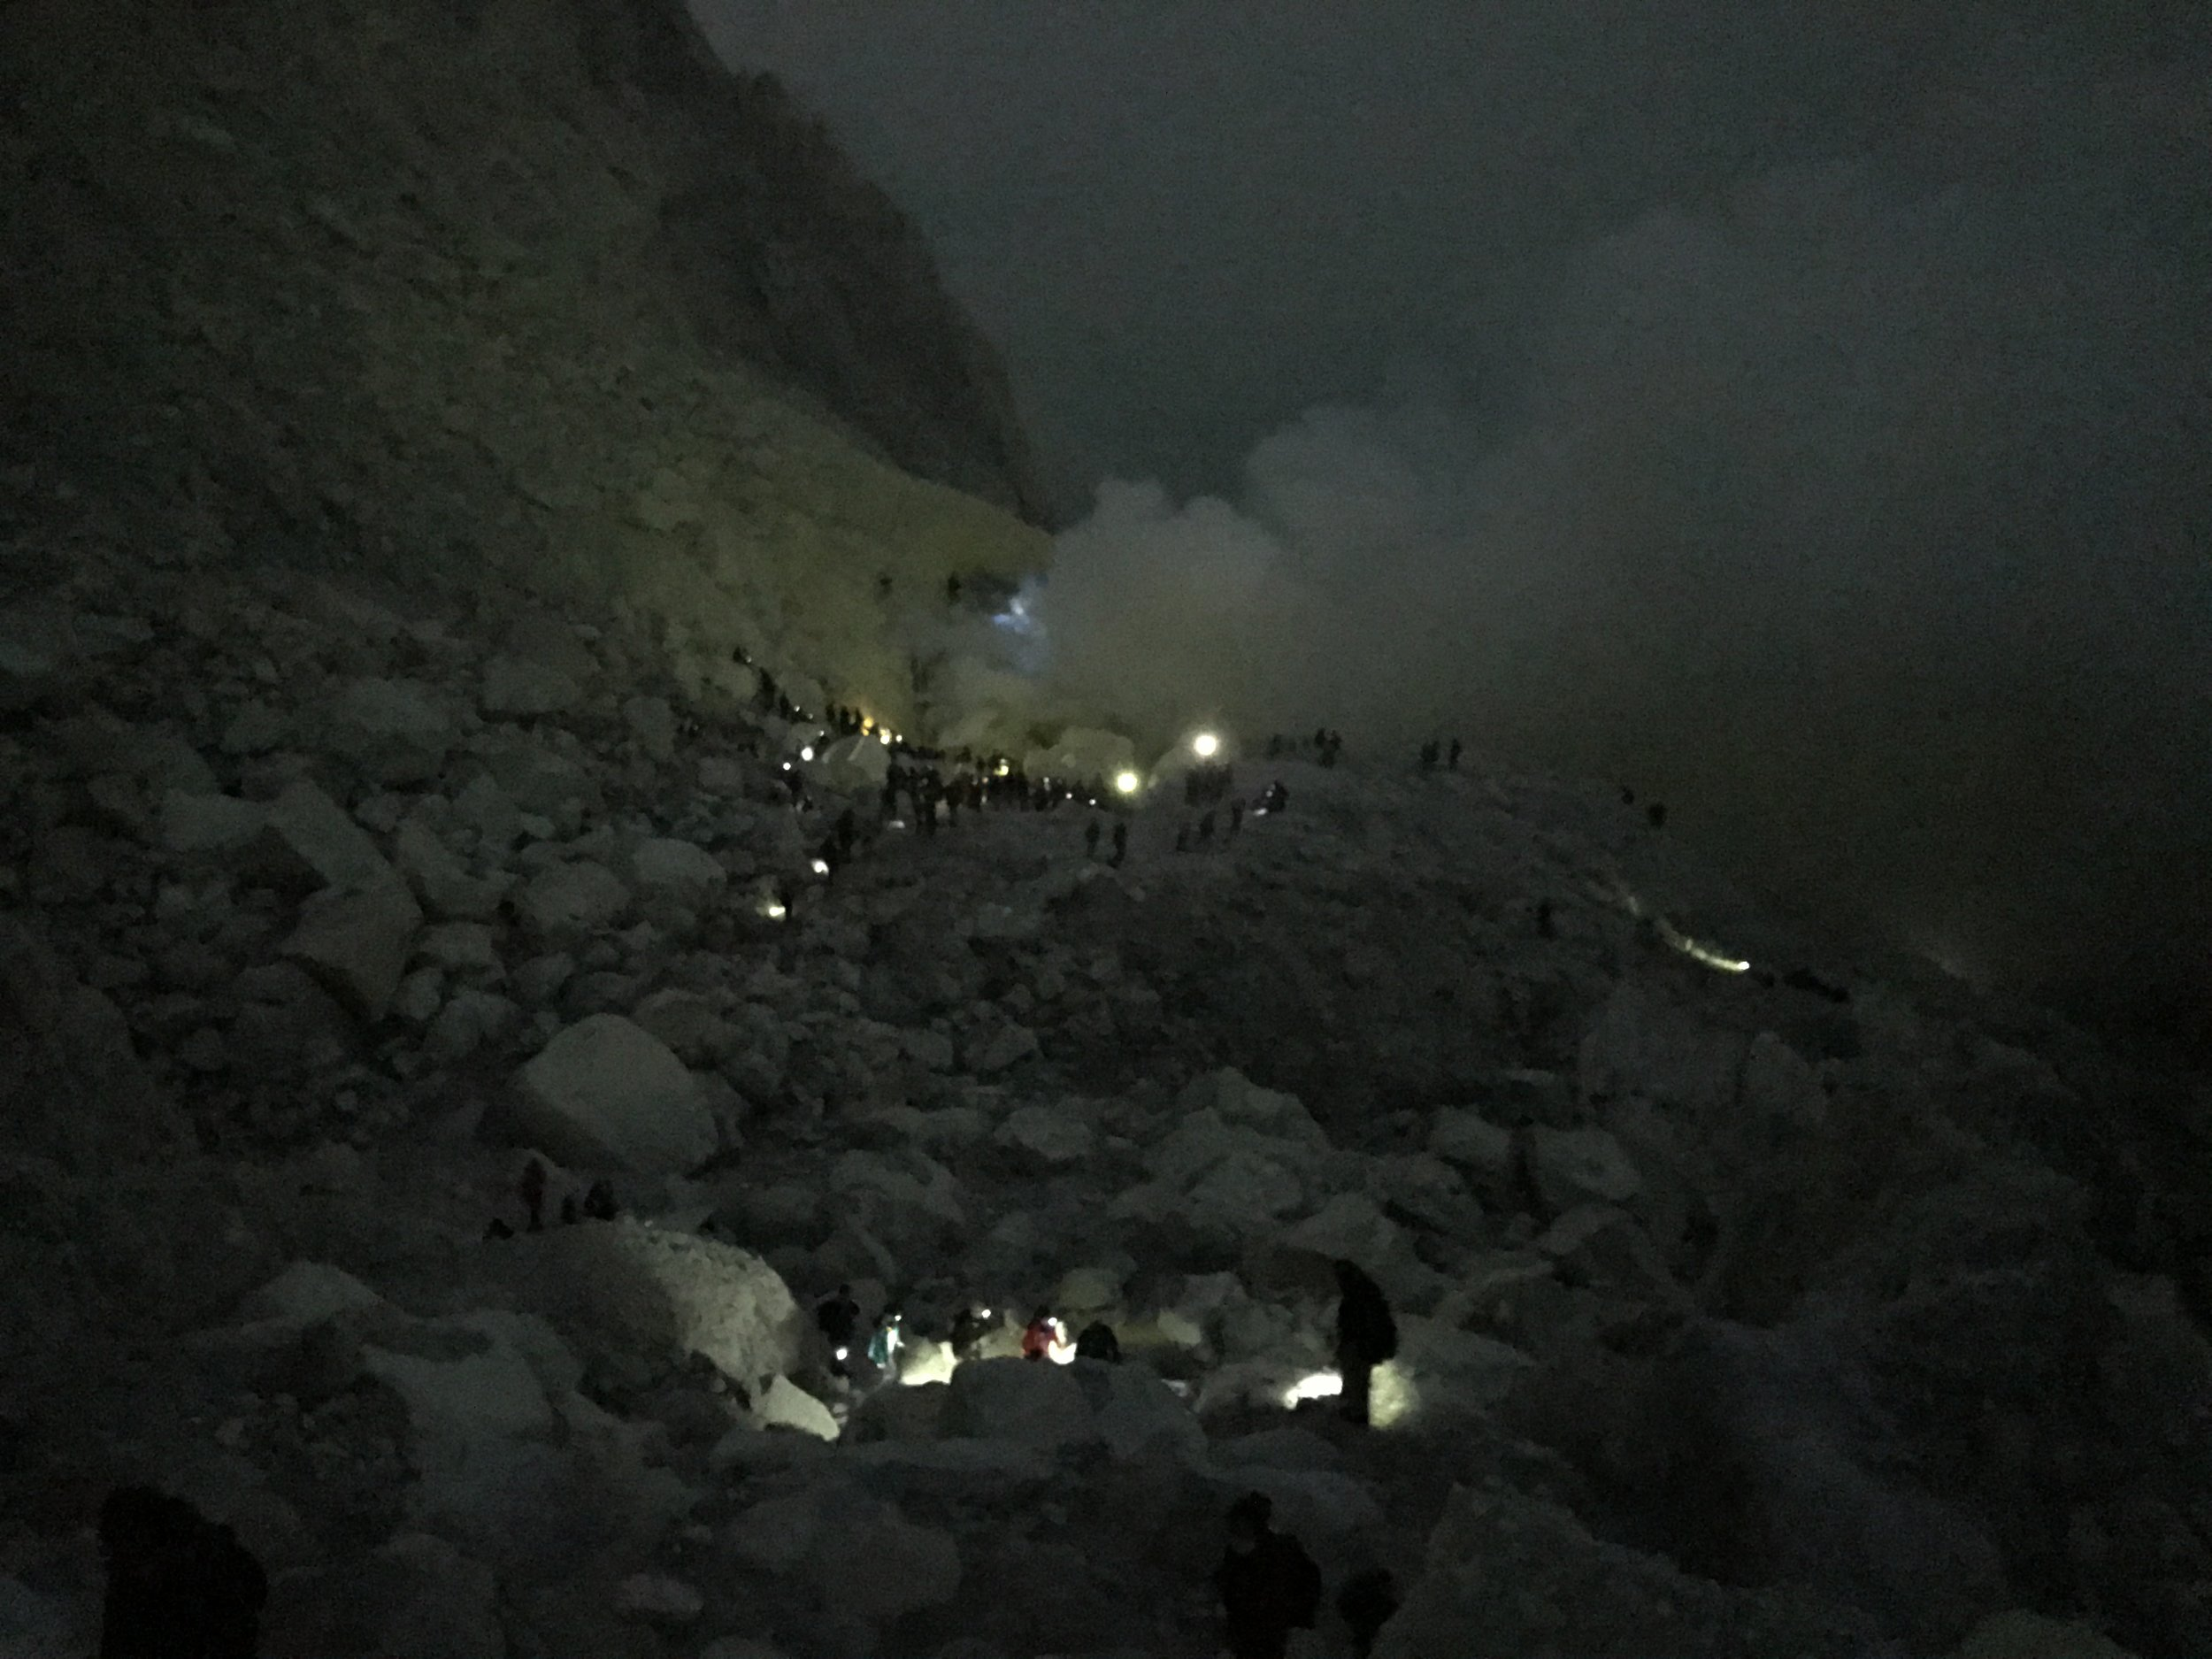 A view of the pathway down into the crater